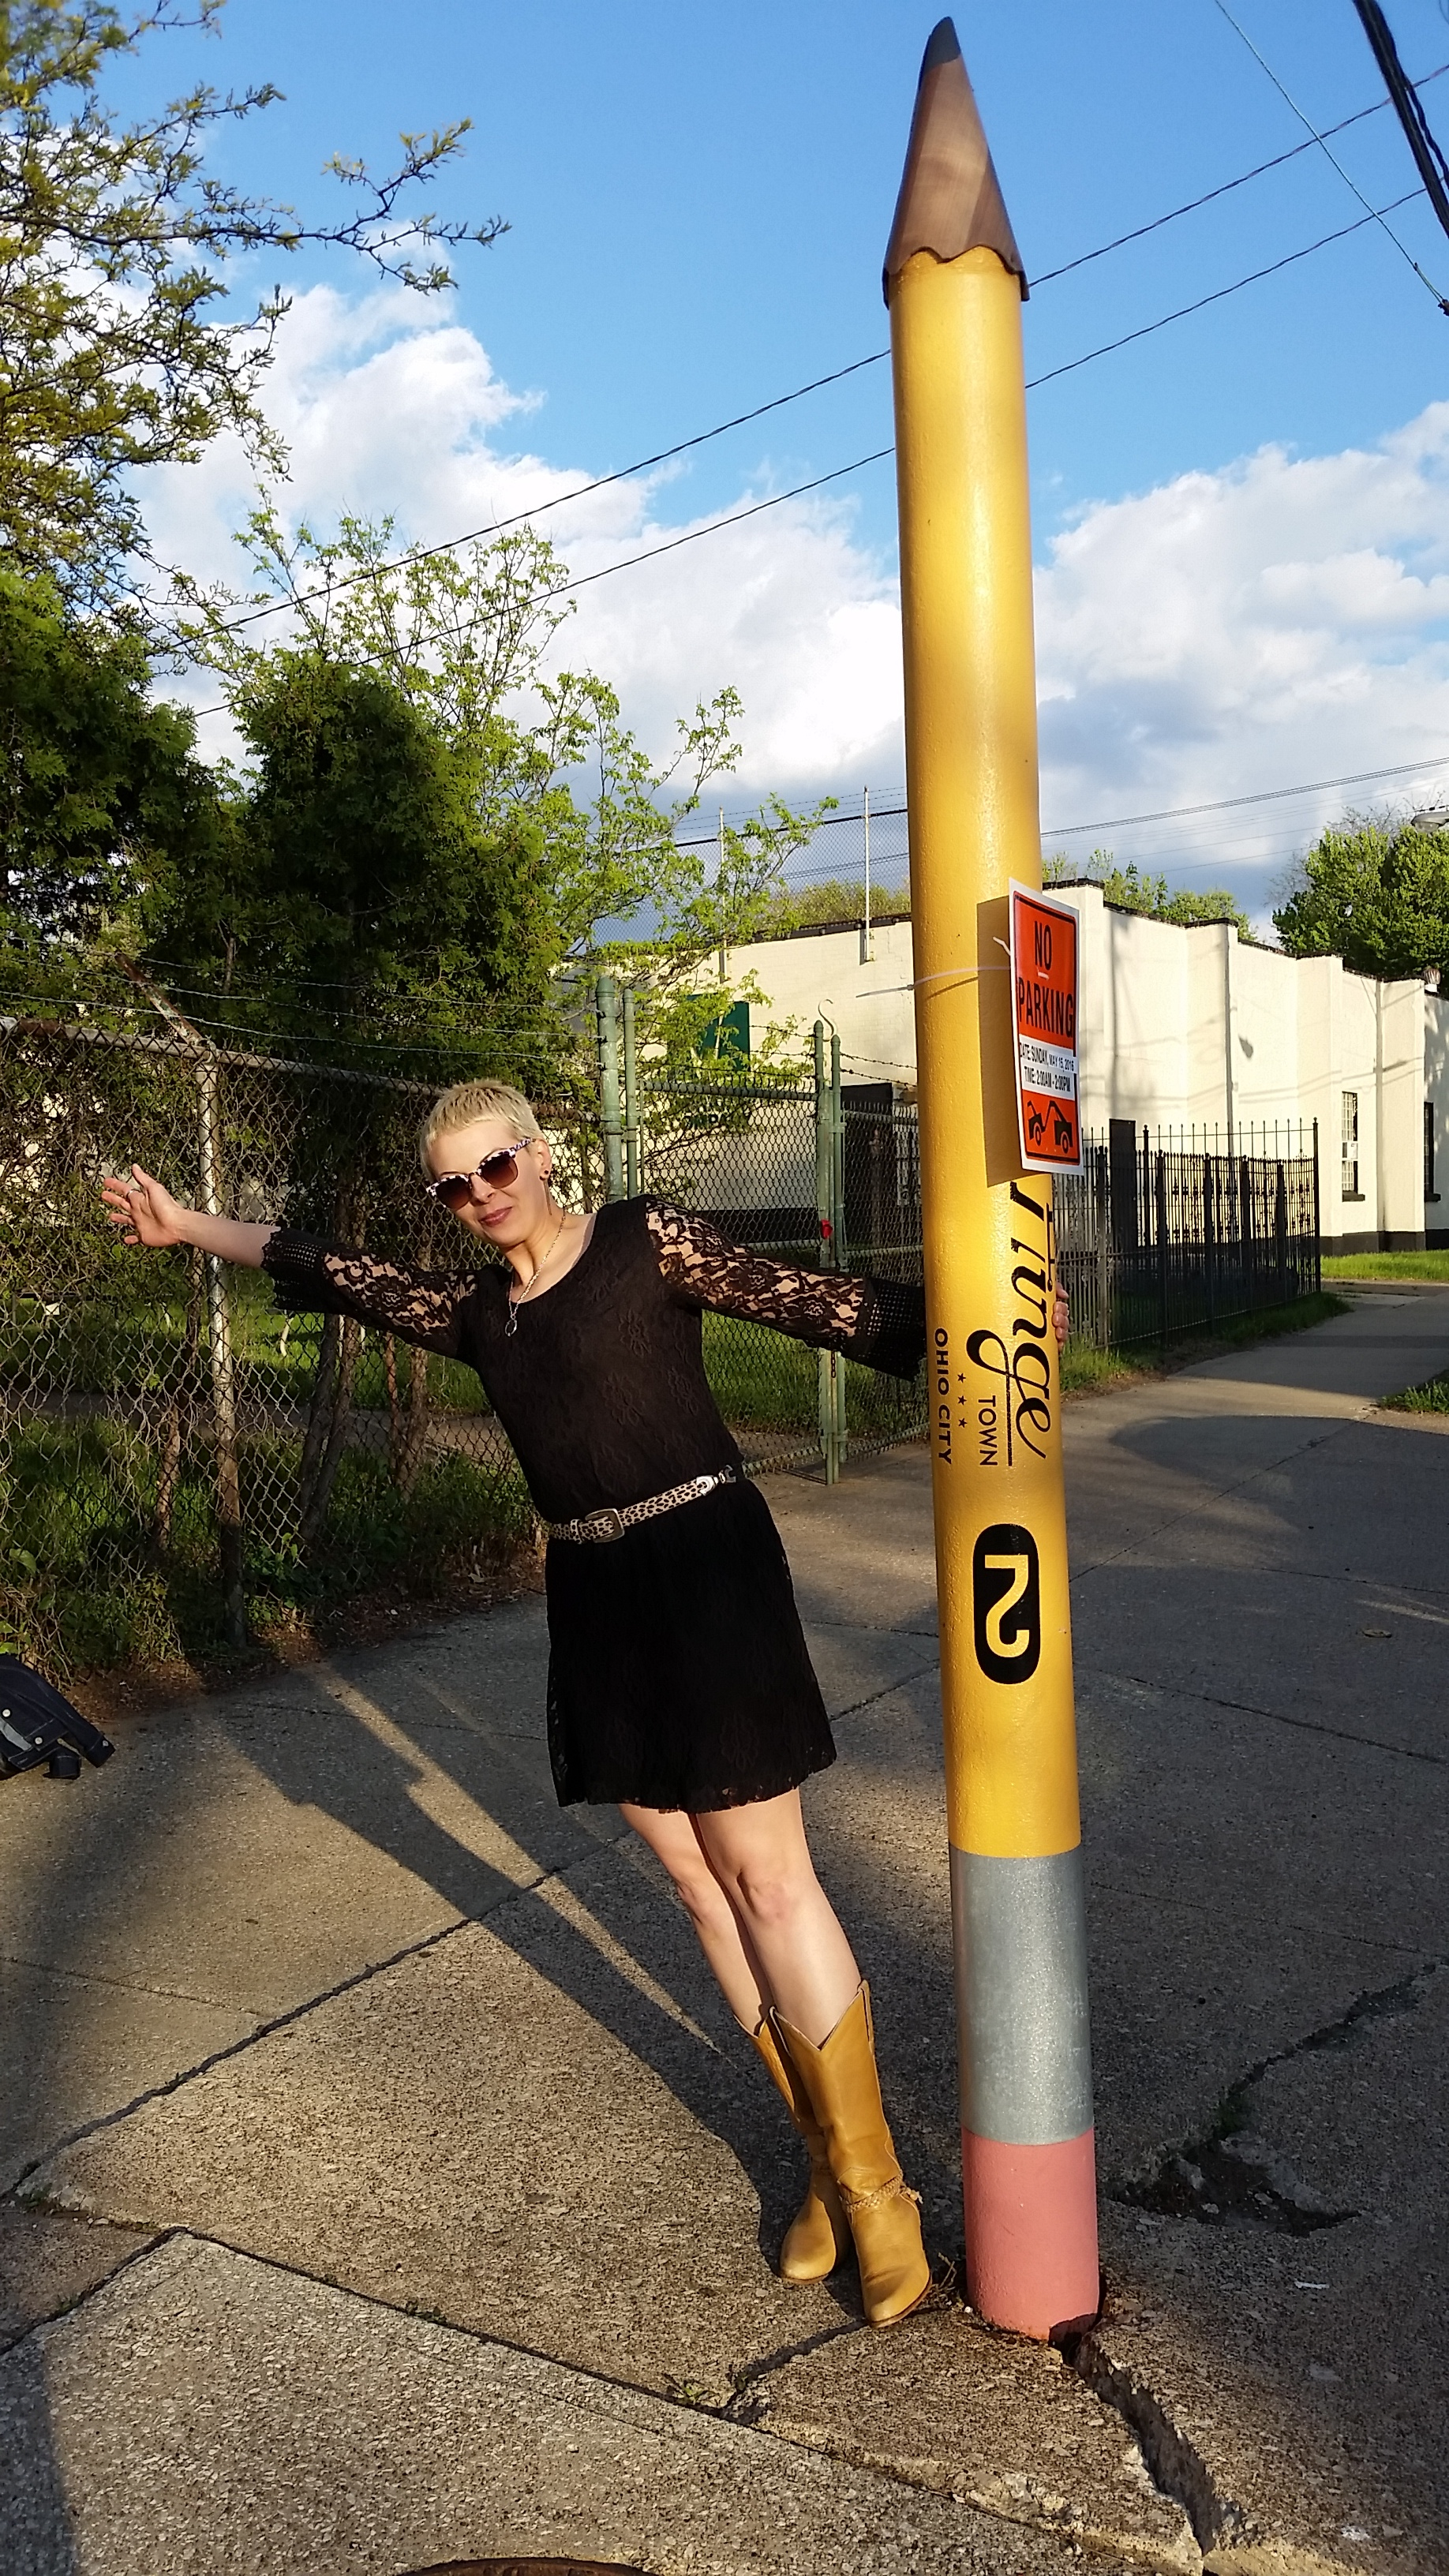 And here's me with a giant #2 pencil in Hingetown, outside of   Rising Star Coffee  . Why a pencil? I have no idea, but I love it.